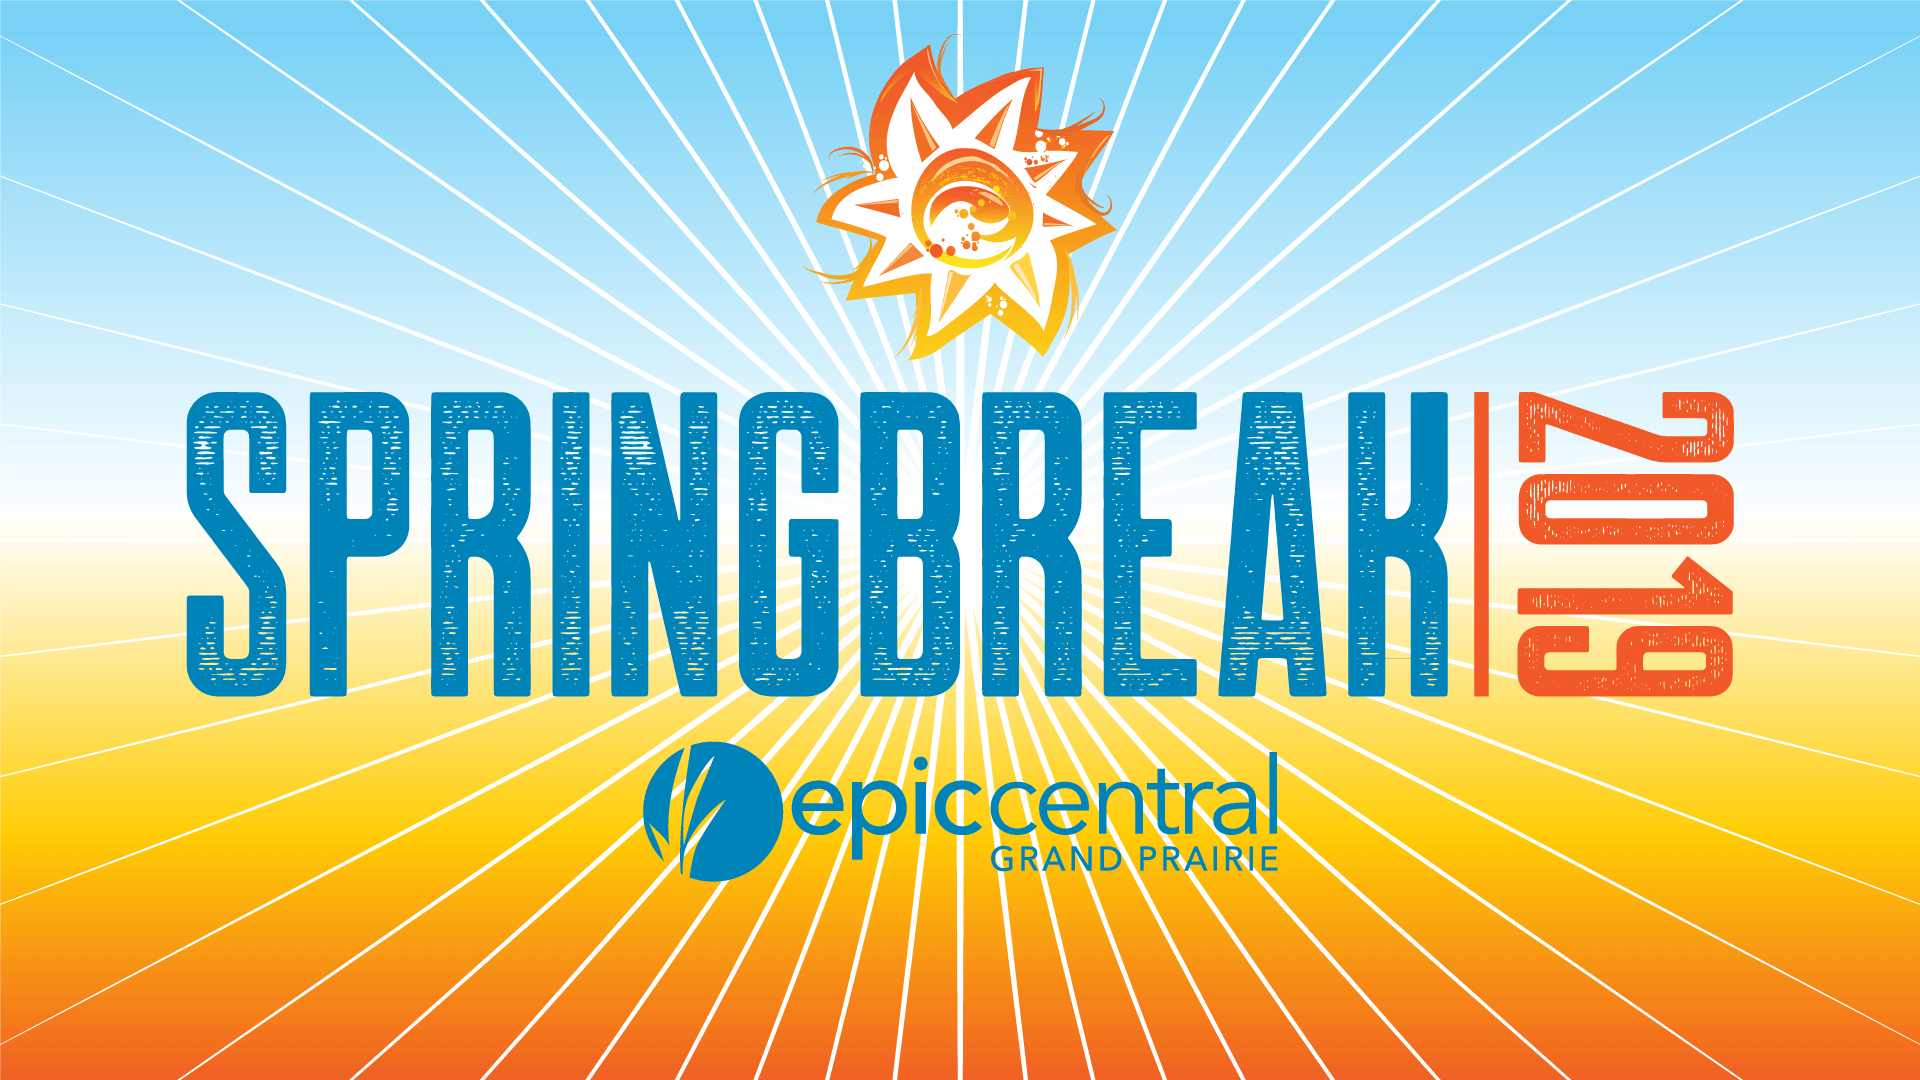 Spring Break Arrives At Epiccentral – Grand Fun Gp Within When Is Spring Break For Eagle Mountain Saginaw Isd In Texas